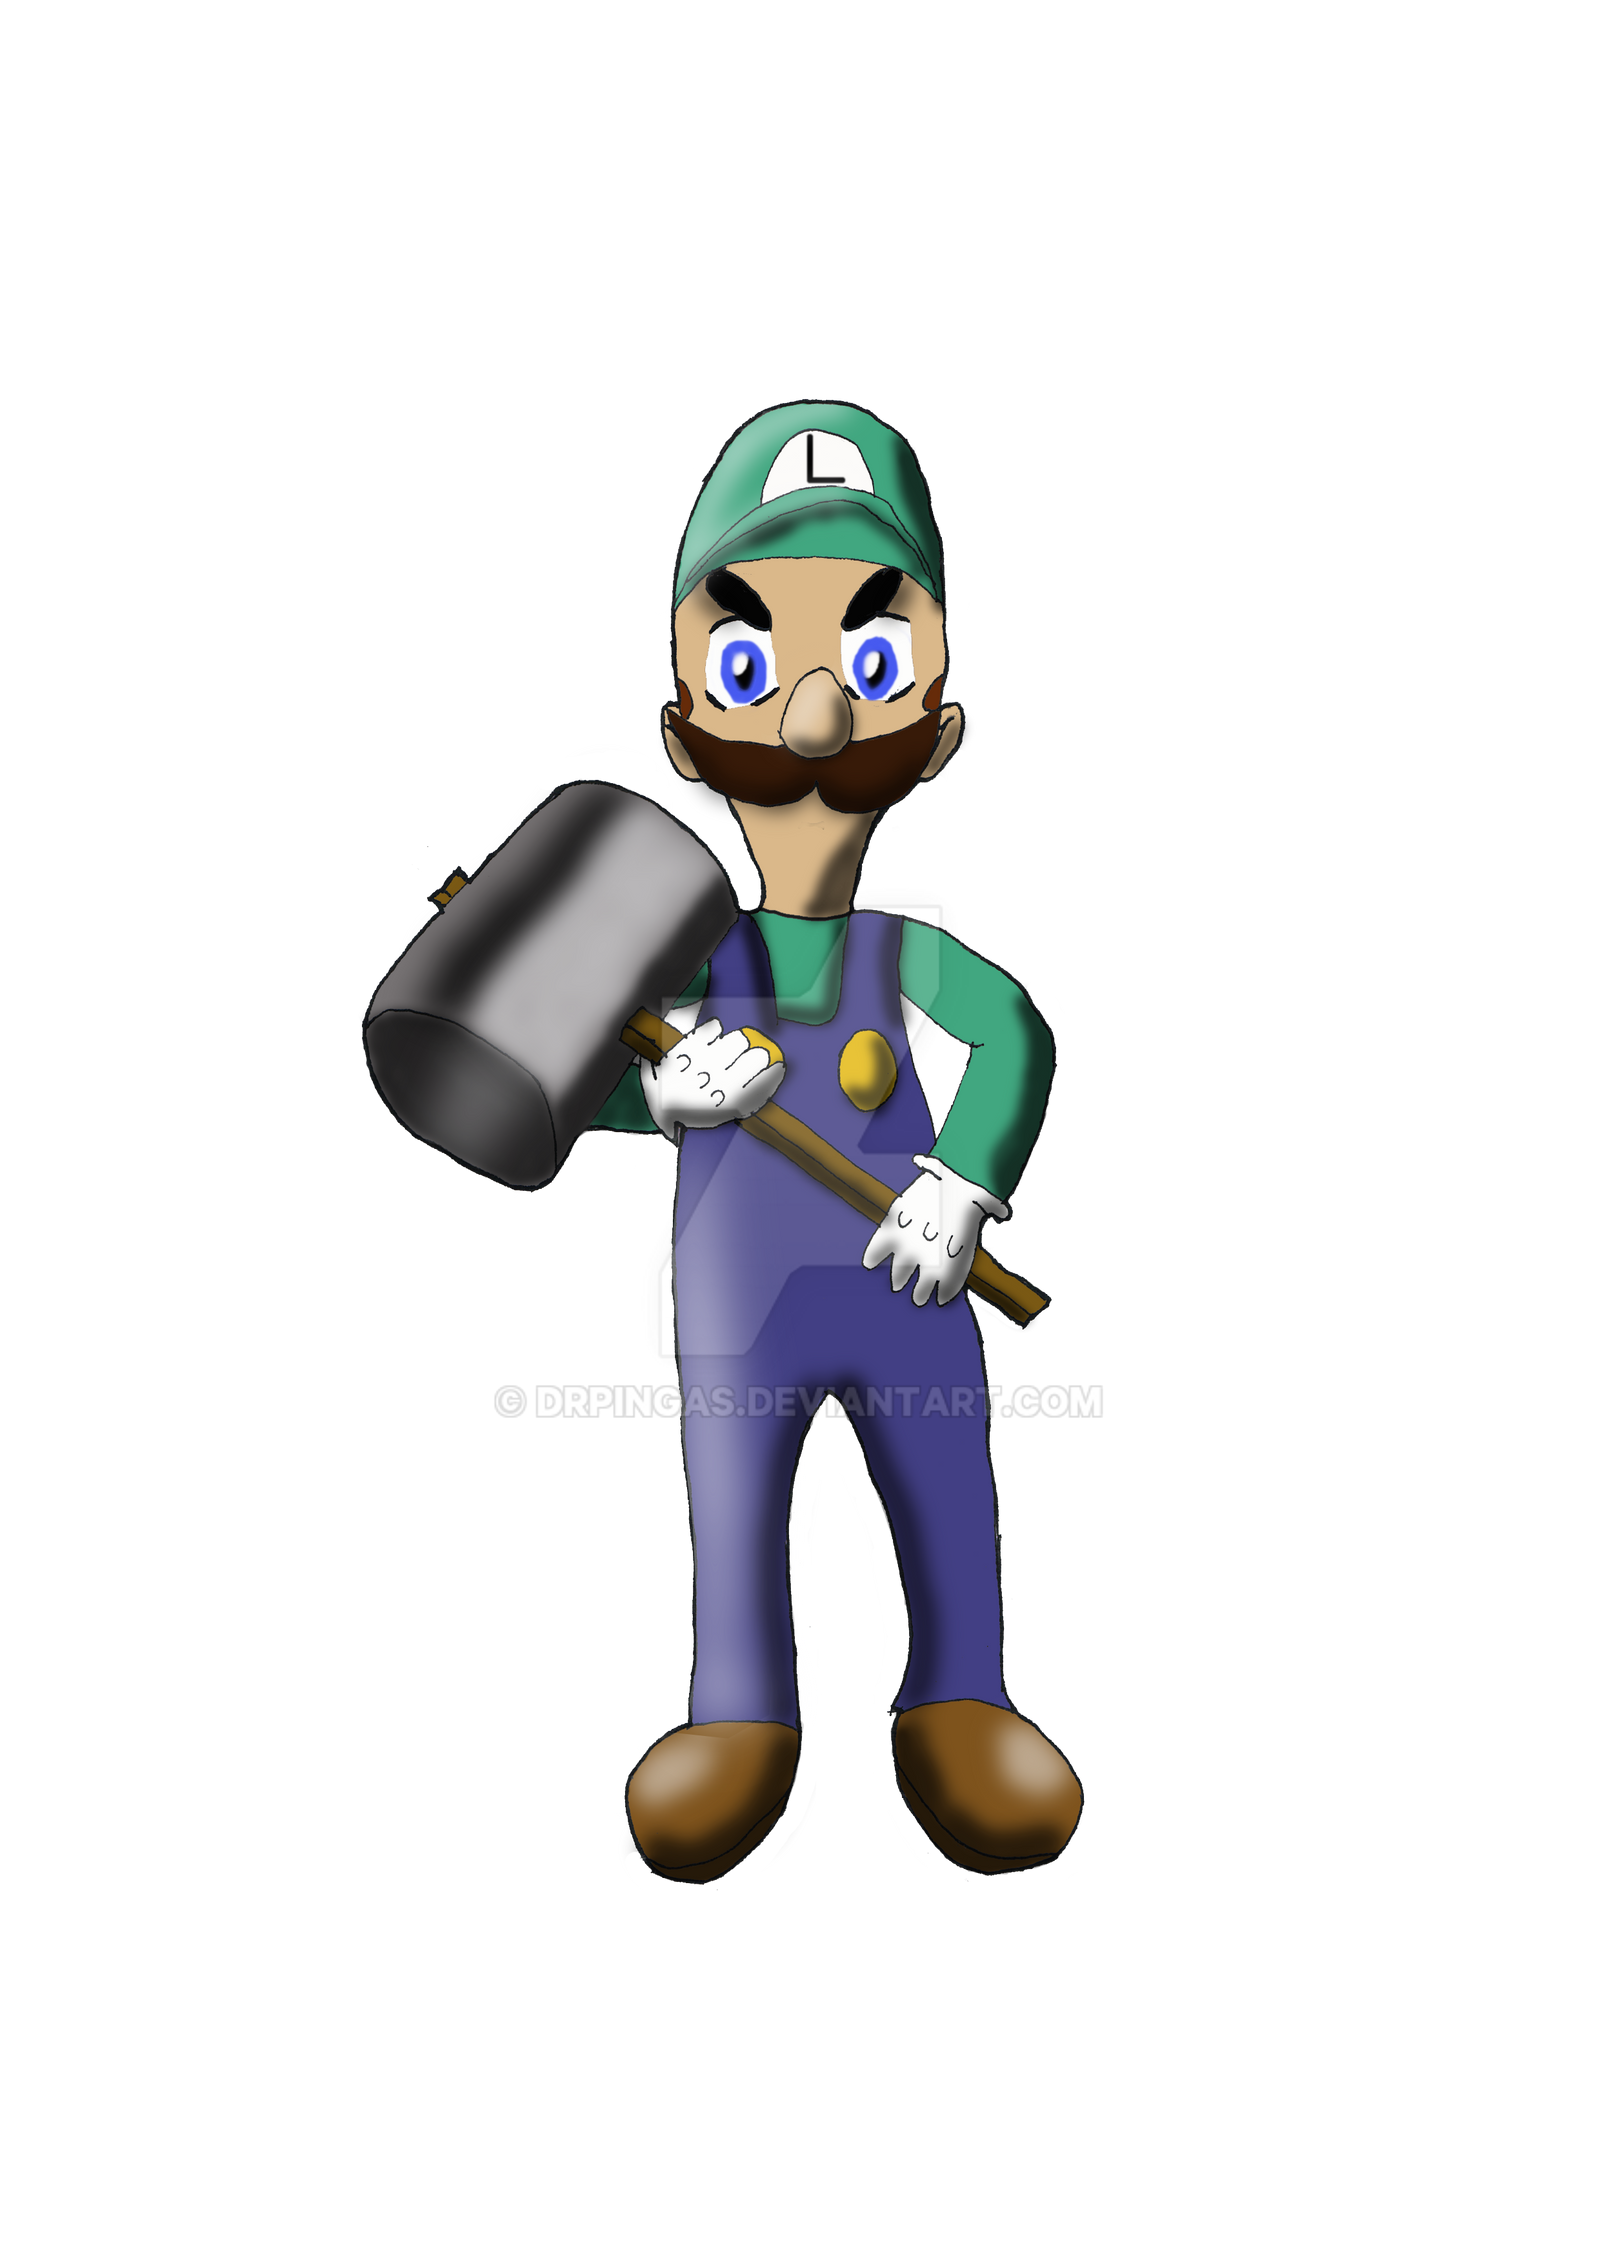 Luigi Kingdom Hearts Jurassic Revolution rpgmaker by DrPingas